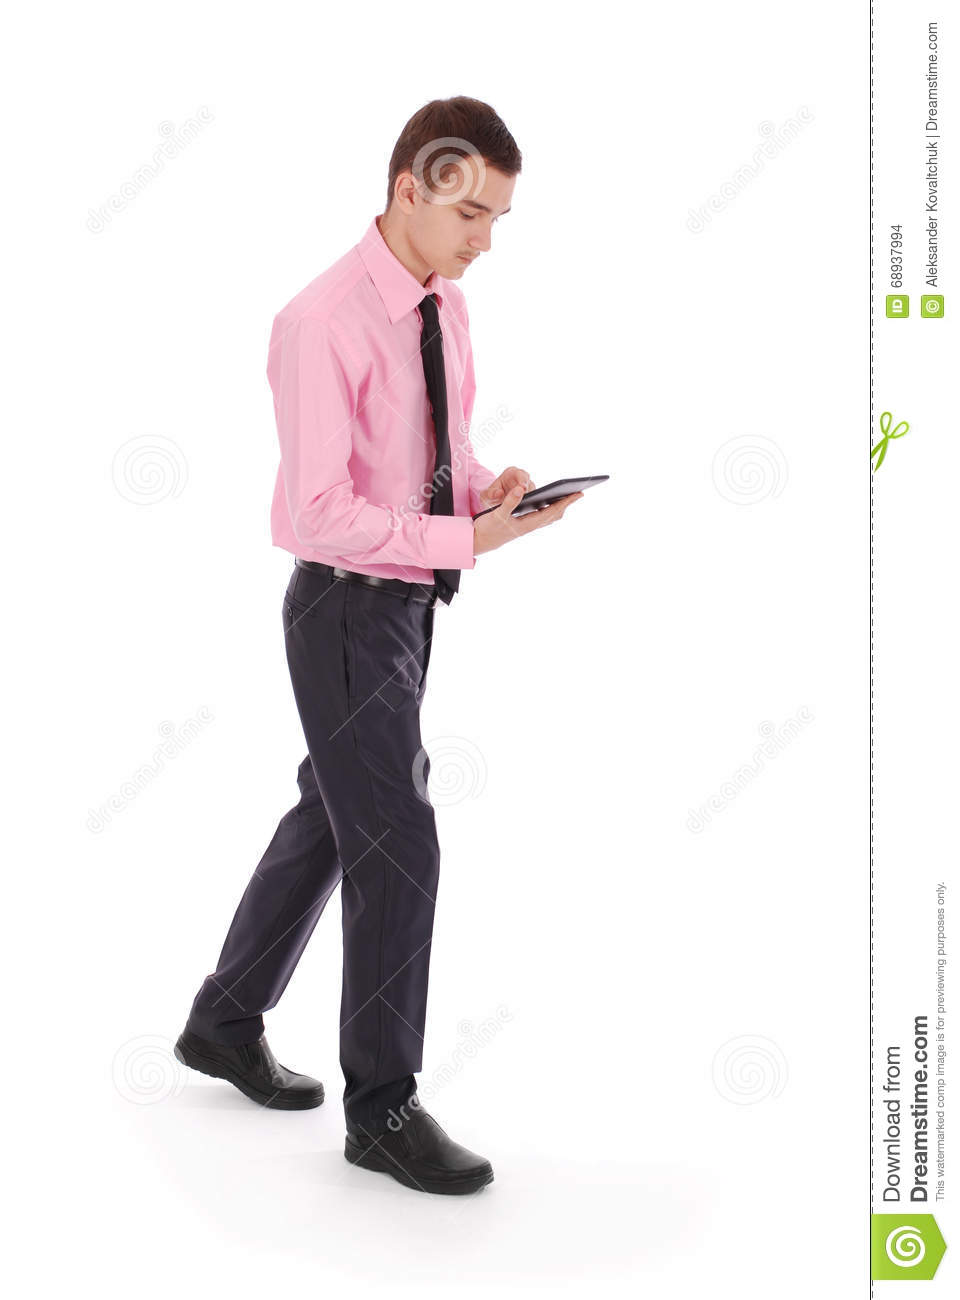 The Boy In A Pink Shirt Goes Holding Tablet PC Stock Photo - Image ...